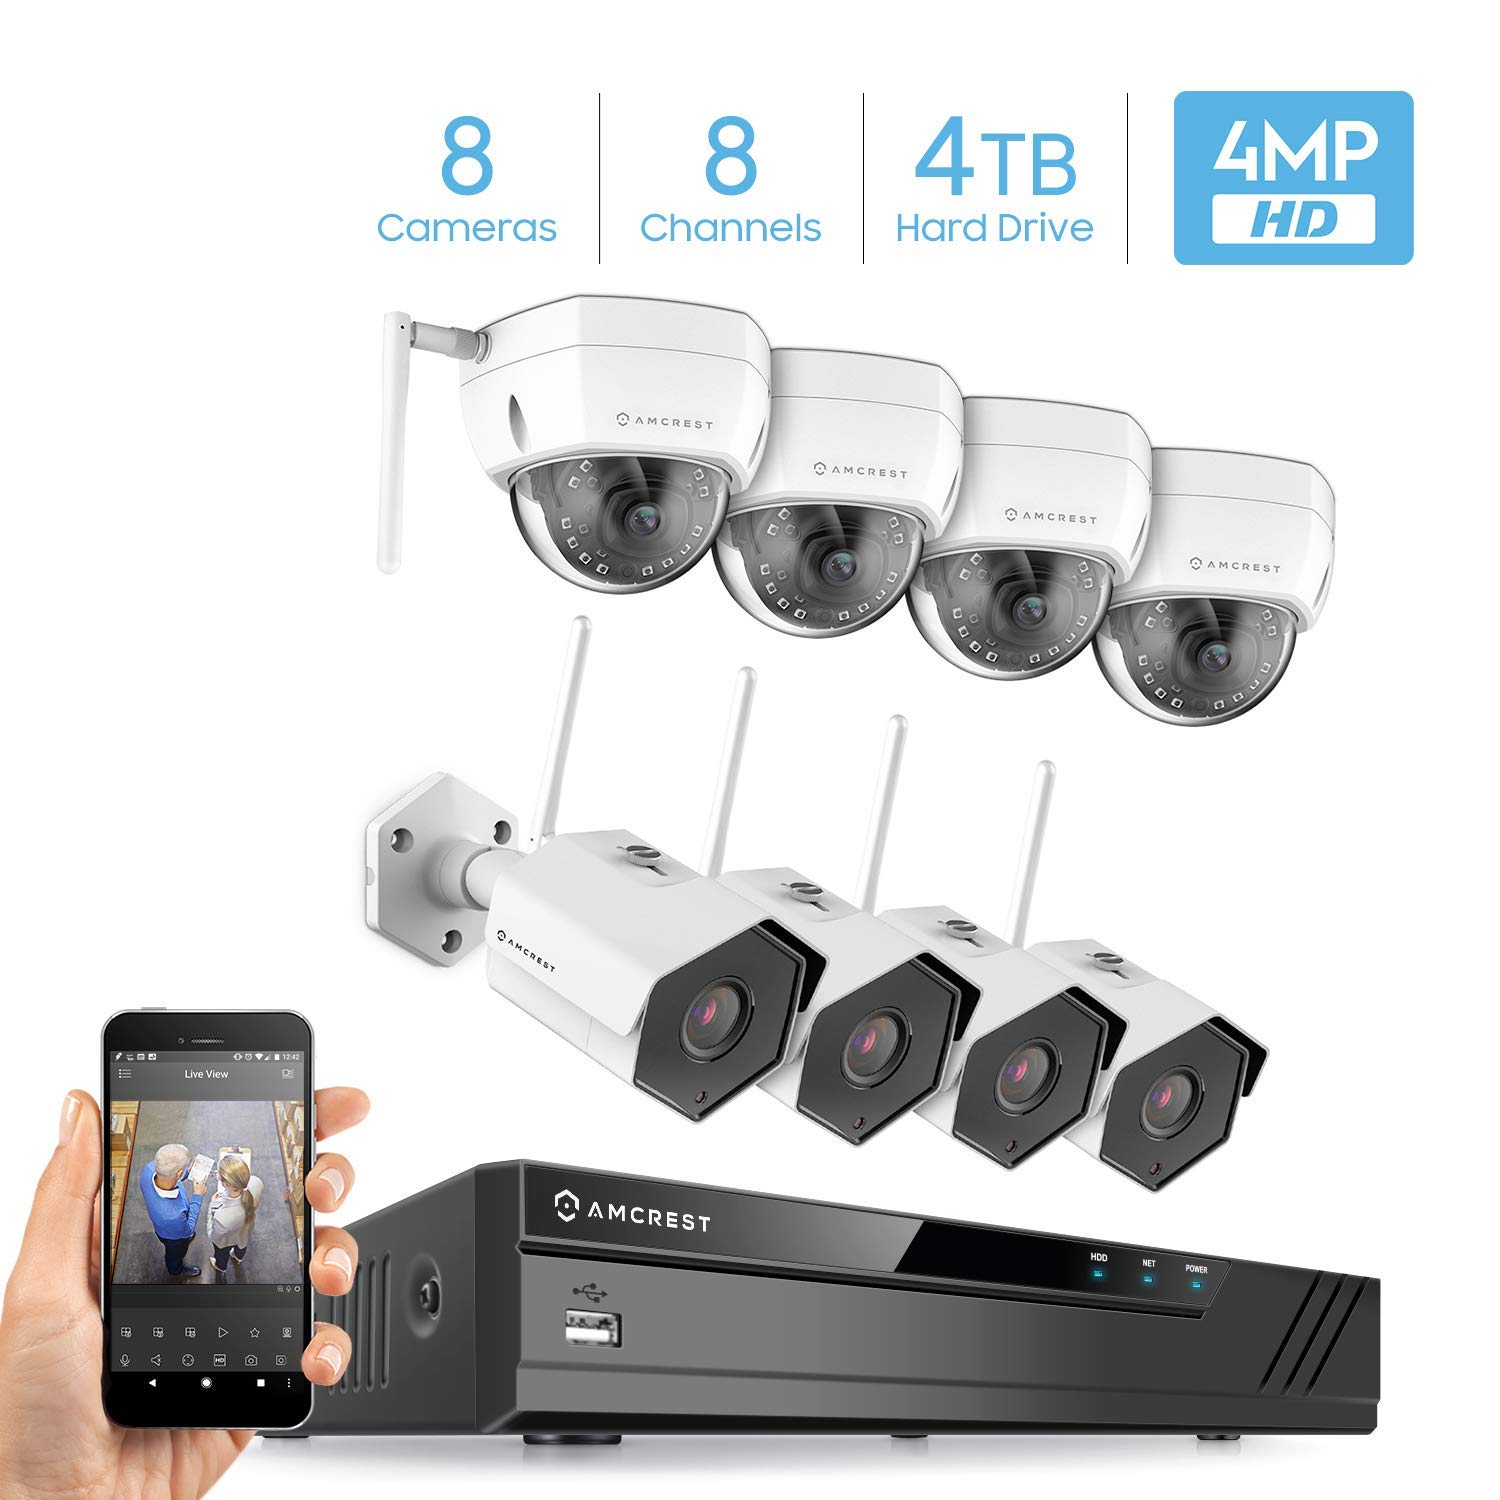 Amcrest 8CH 4MP Security Camera System w/ 4K NVR, (8) x 4-Megapixel IP67 Weatherproof Bullet & Dome WiFi IP Cameras, 3.6mm Angle Lens, Pre-Installed 4TB Hard Drive, 98ft Night Vision (White)